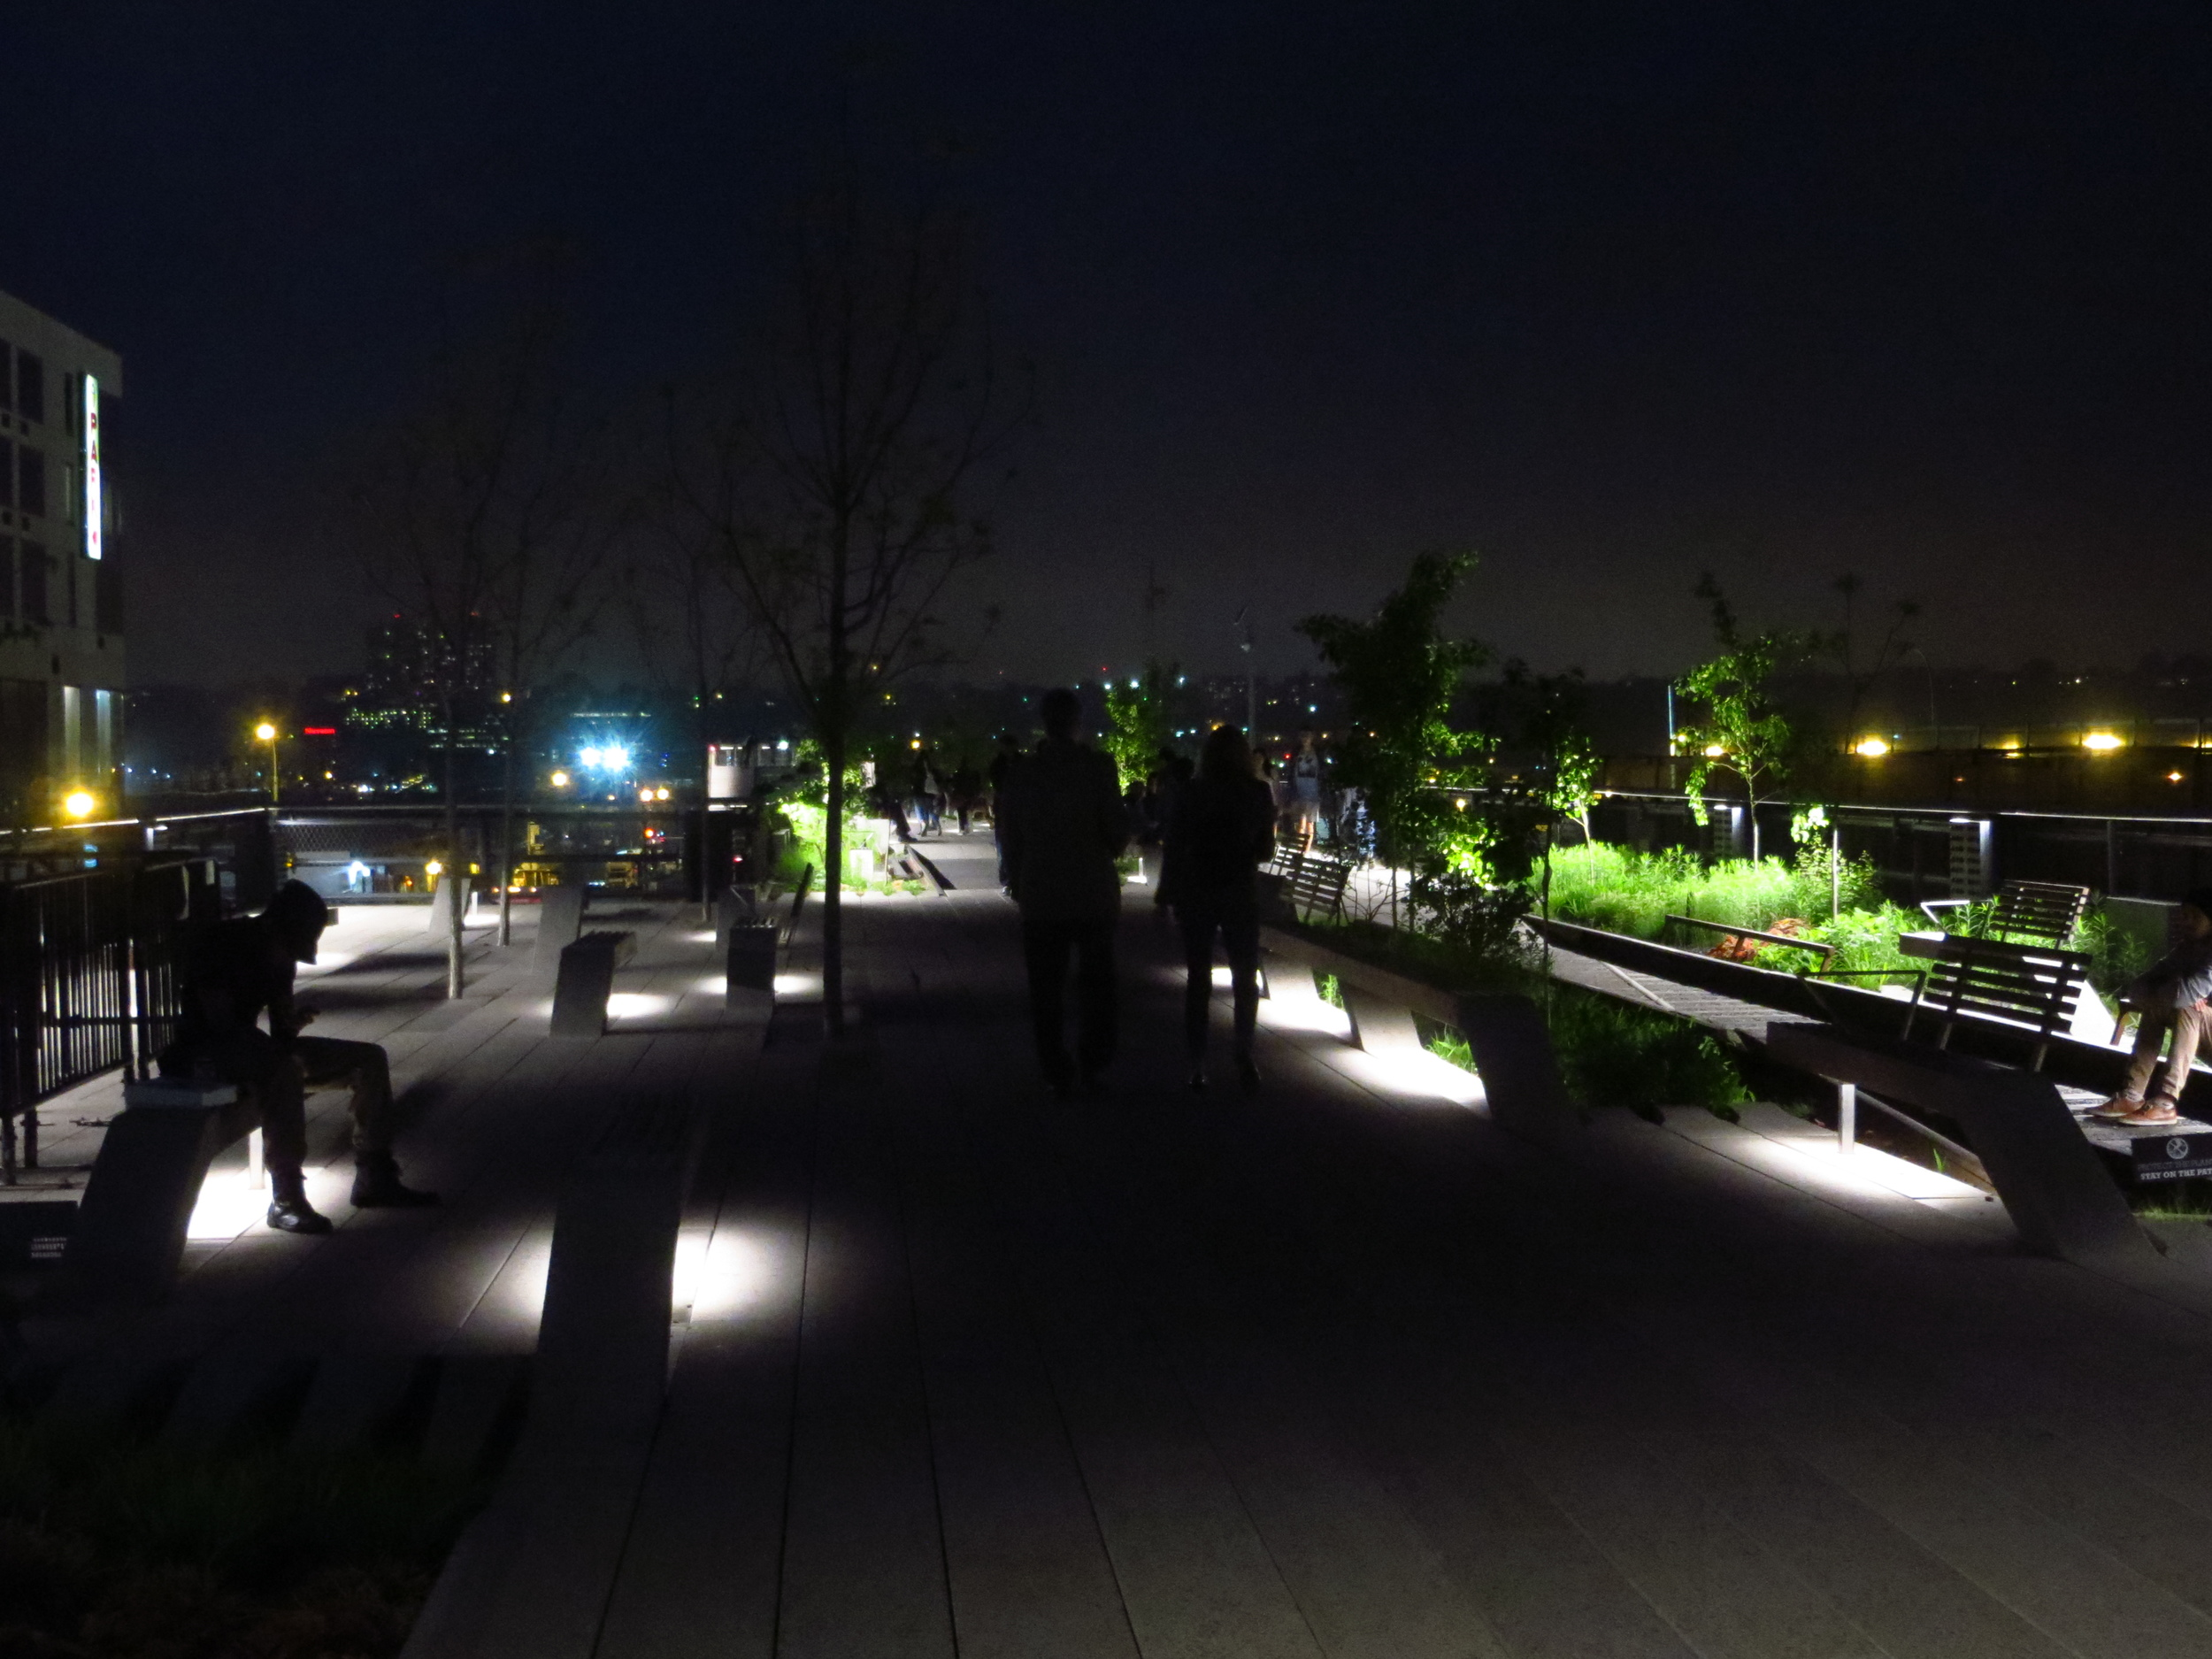 More lit benches